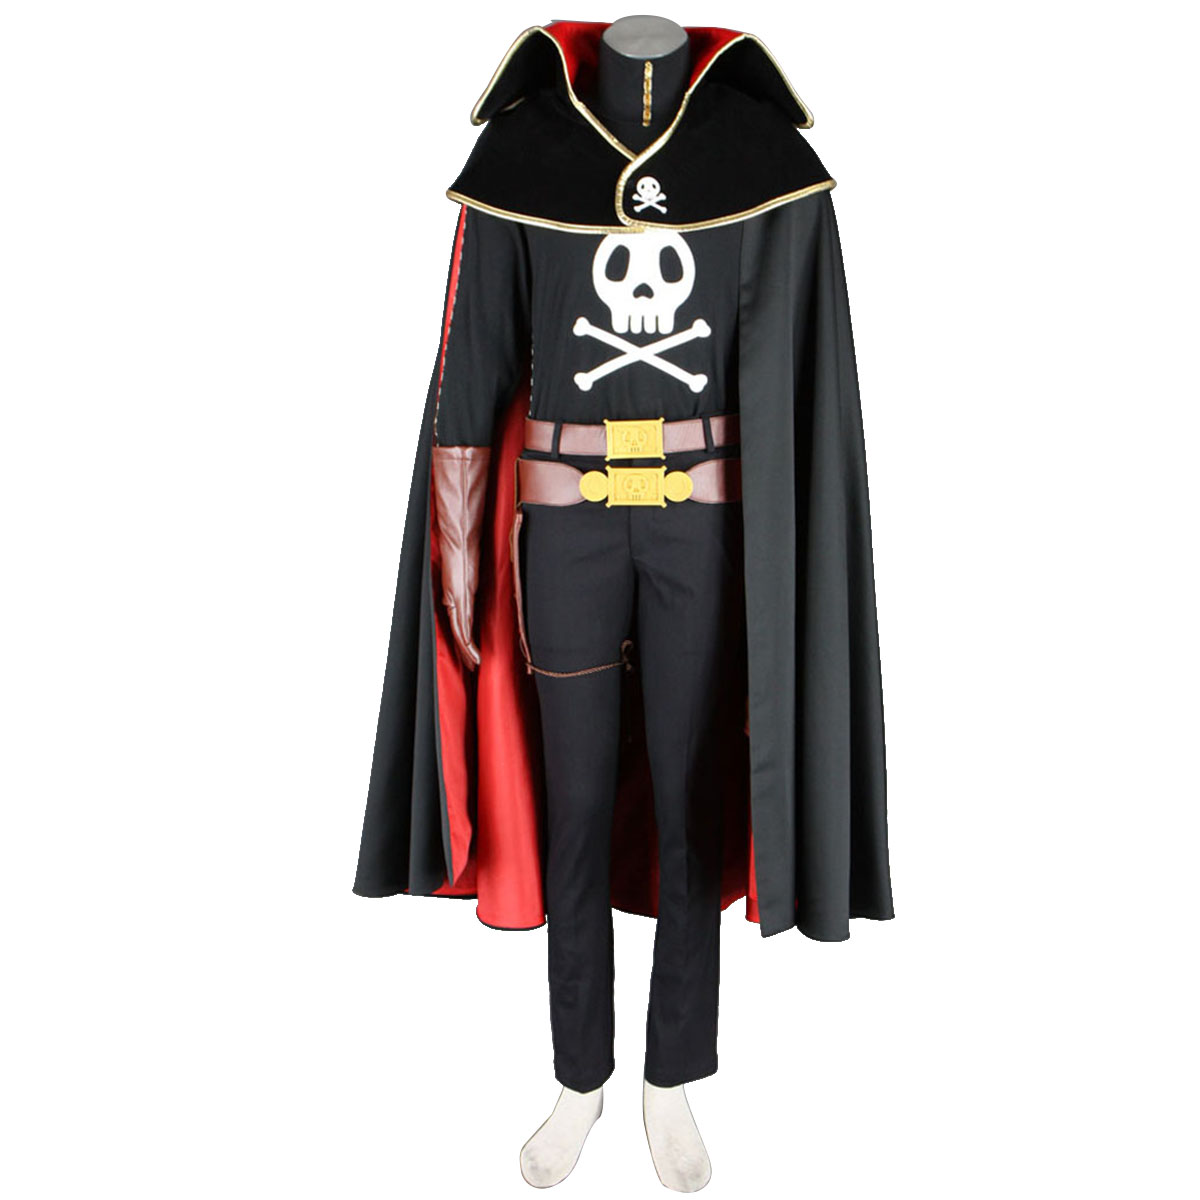 Galaxy Express 999 Captain Harlock Cosplay Costumes New Zealand Online Store